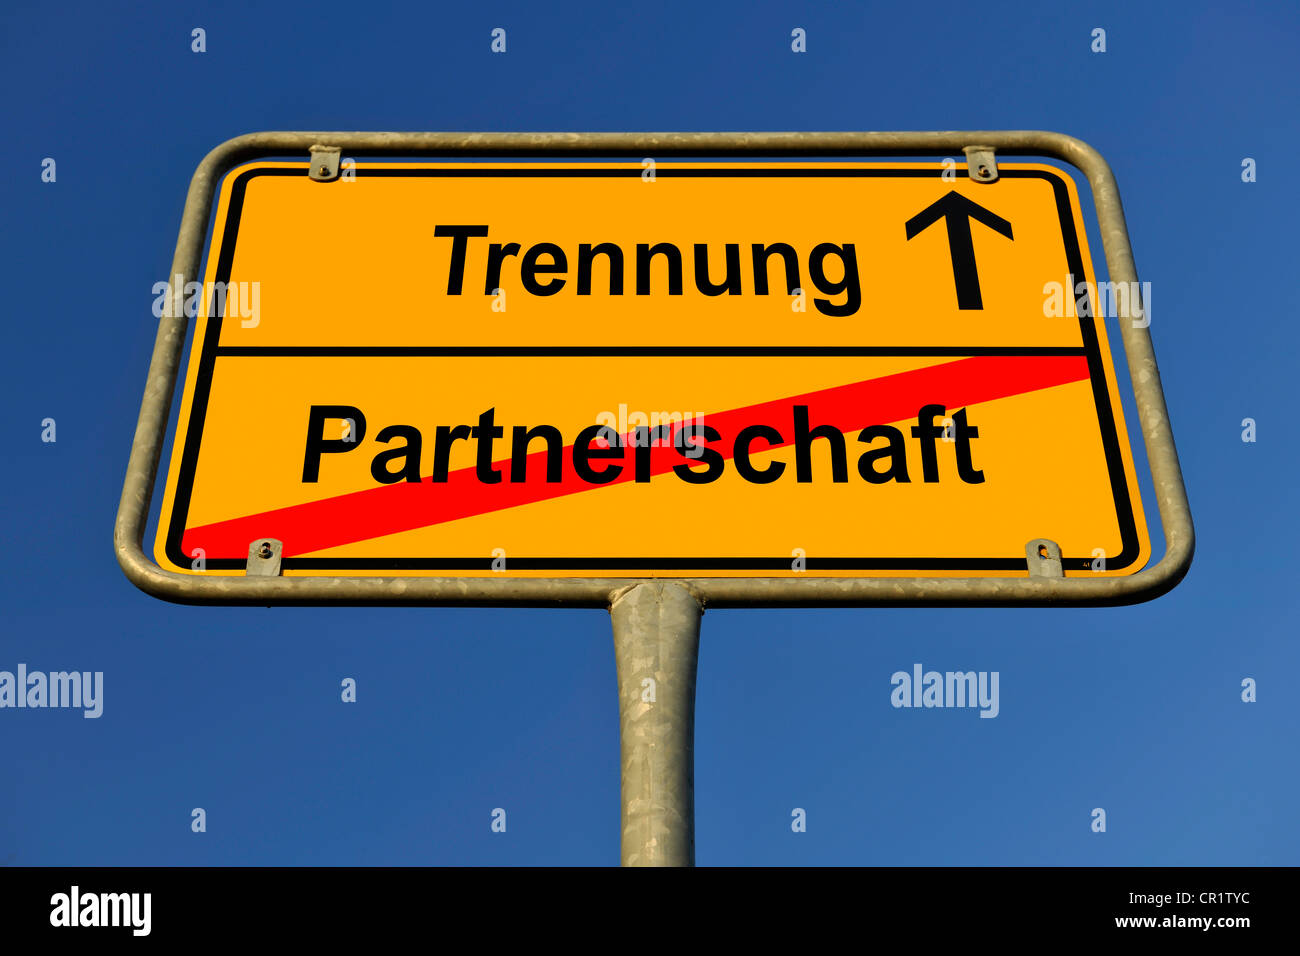 City limit sign, symbolic image for the way from Partnerschaft to Trennung, German for going from being in a partnership to Stock Photo